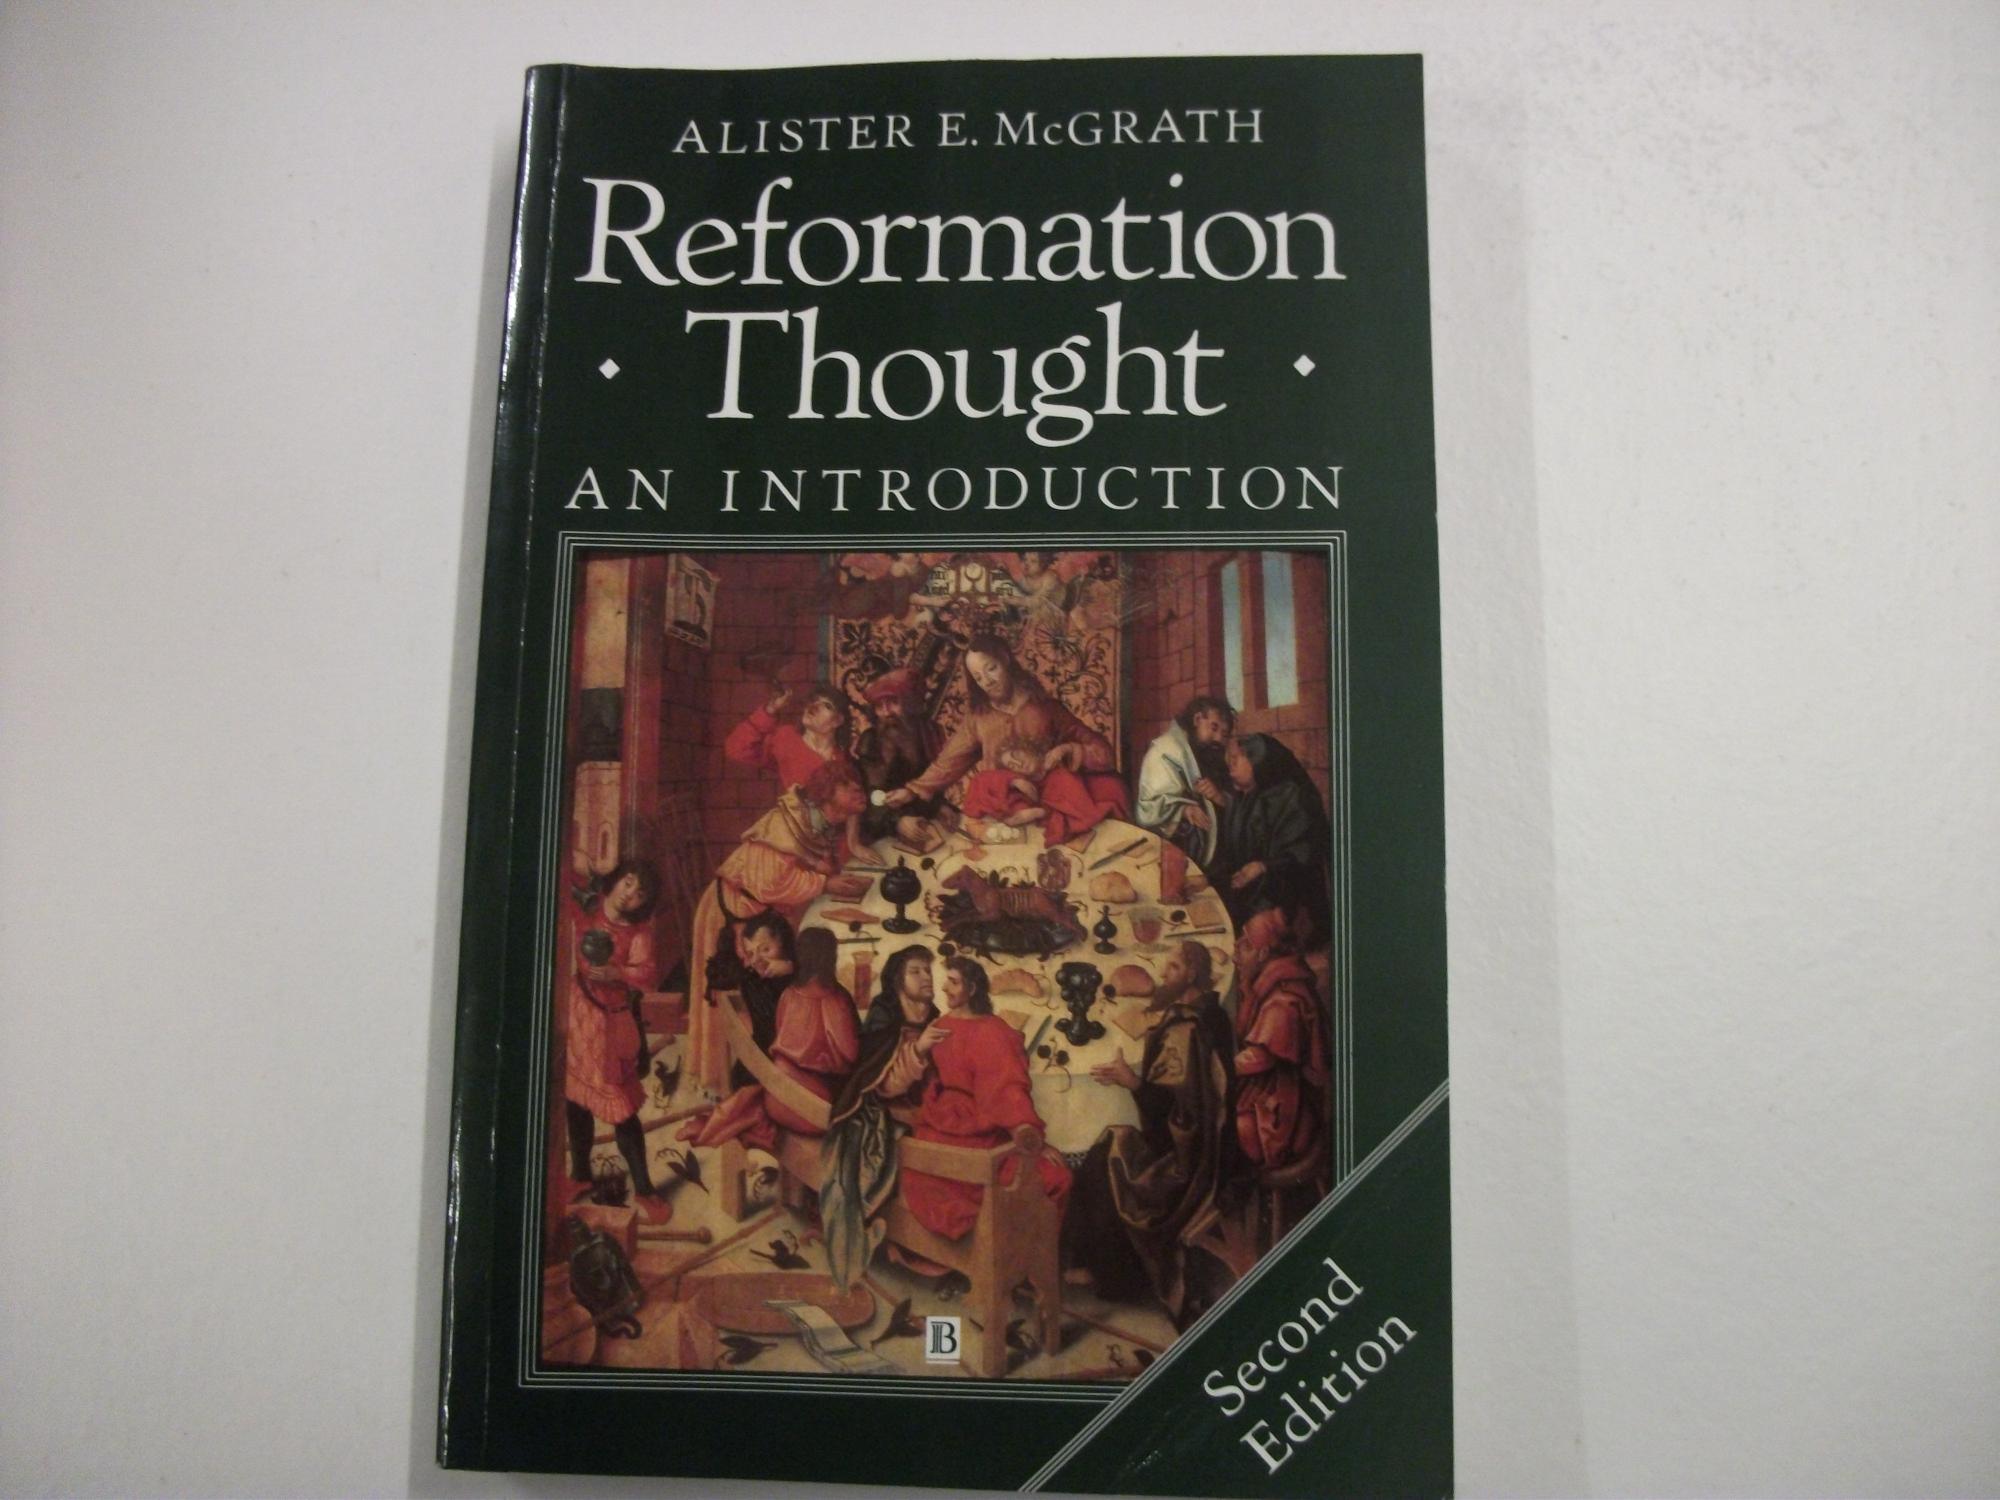 Image result for reformation thought mcgrath